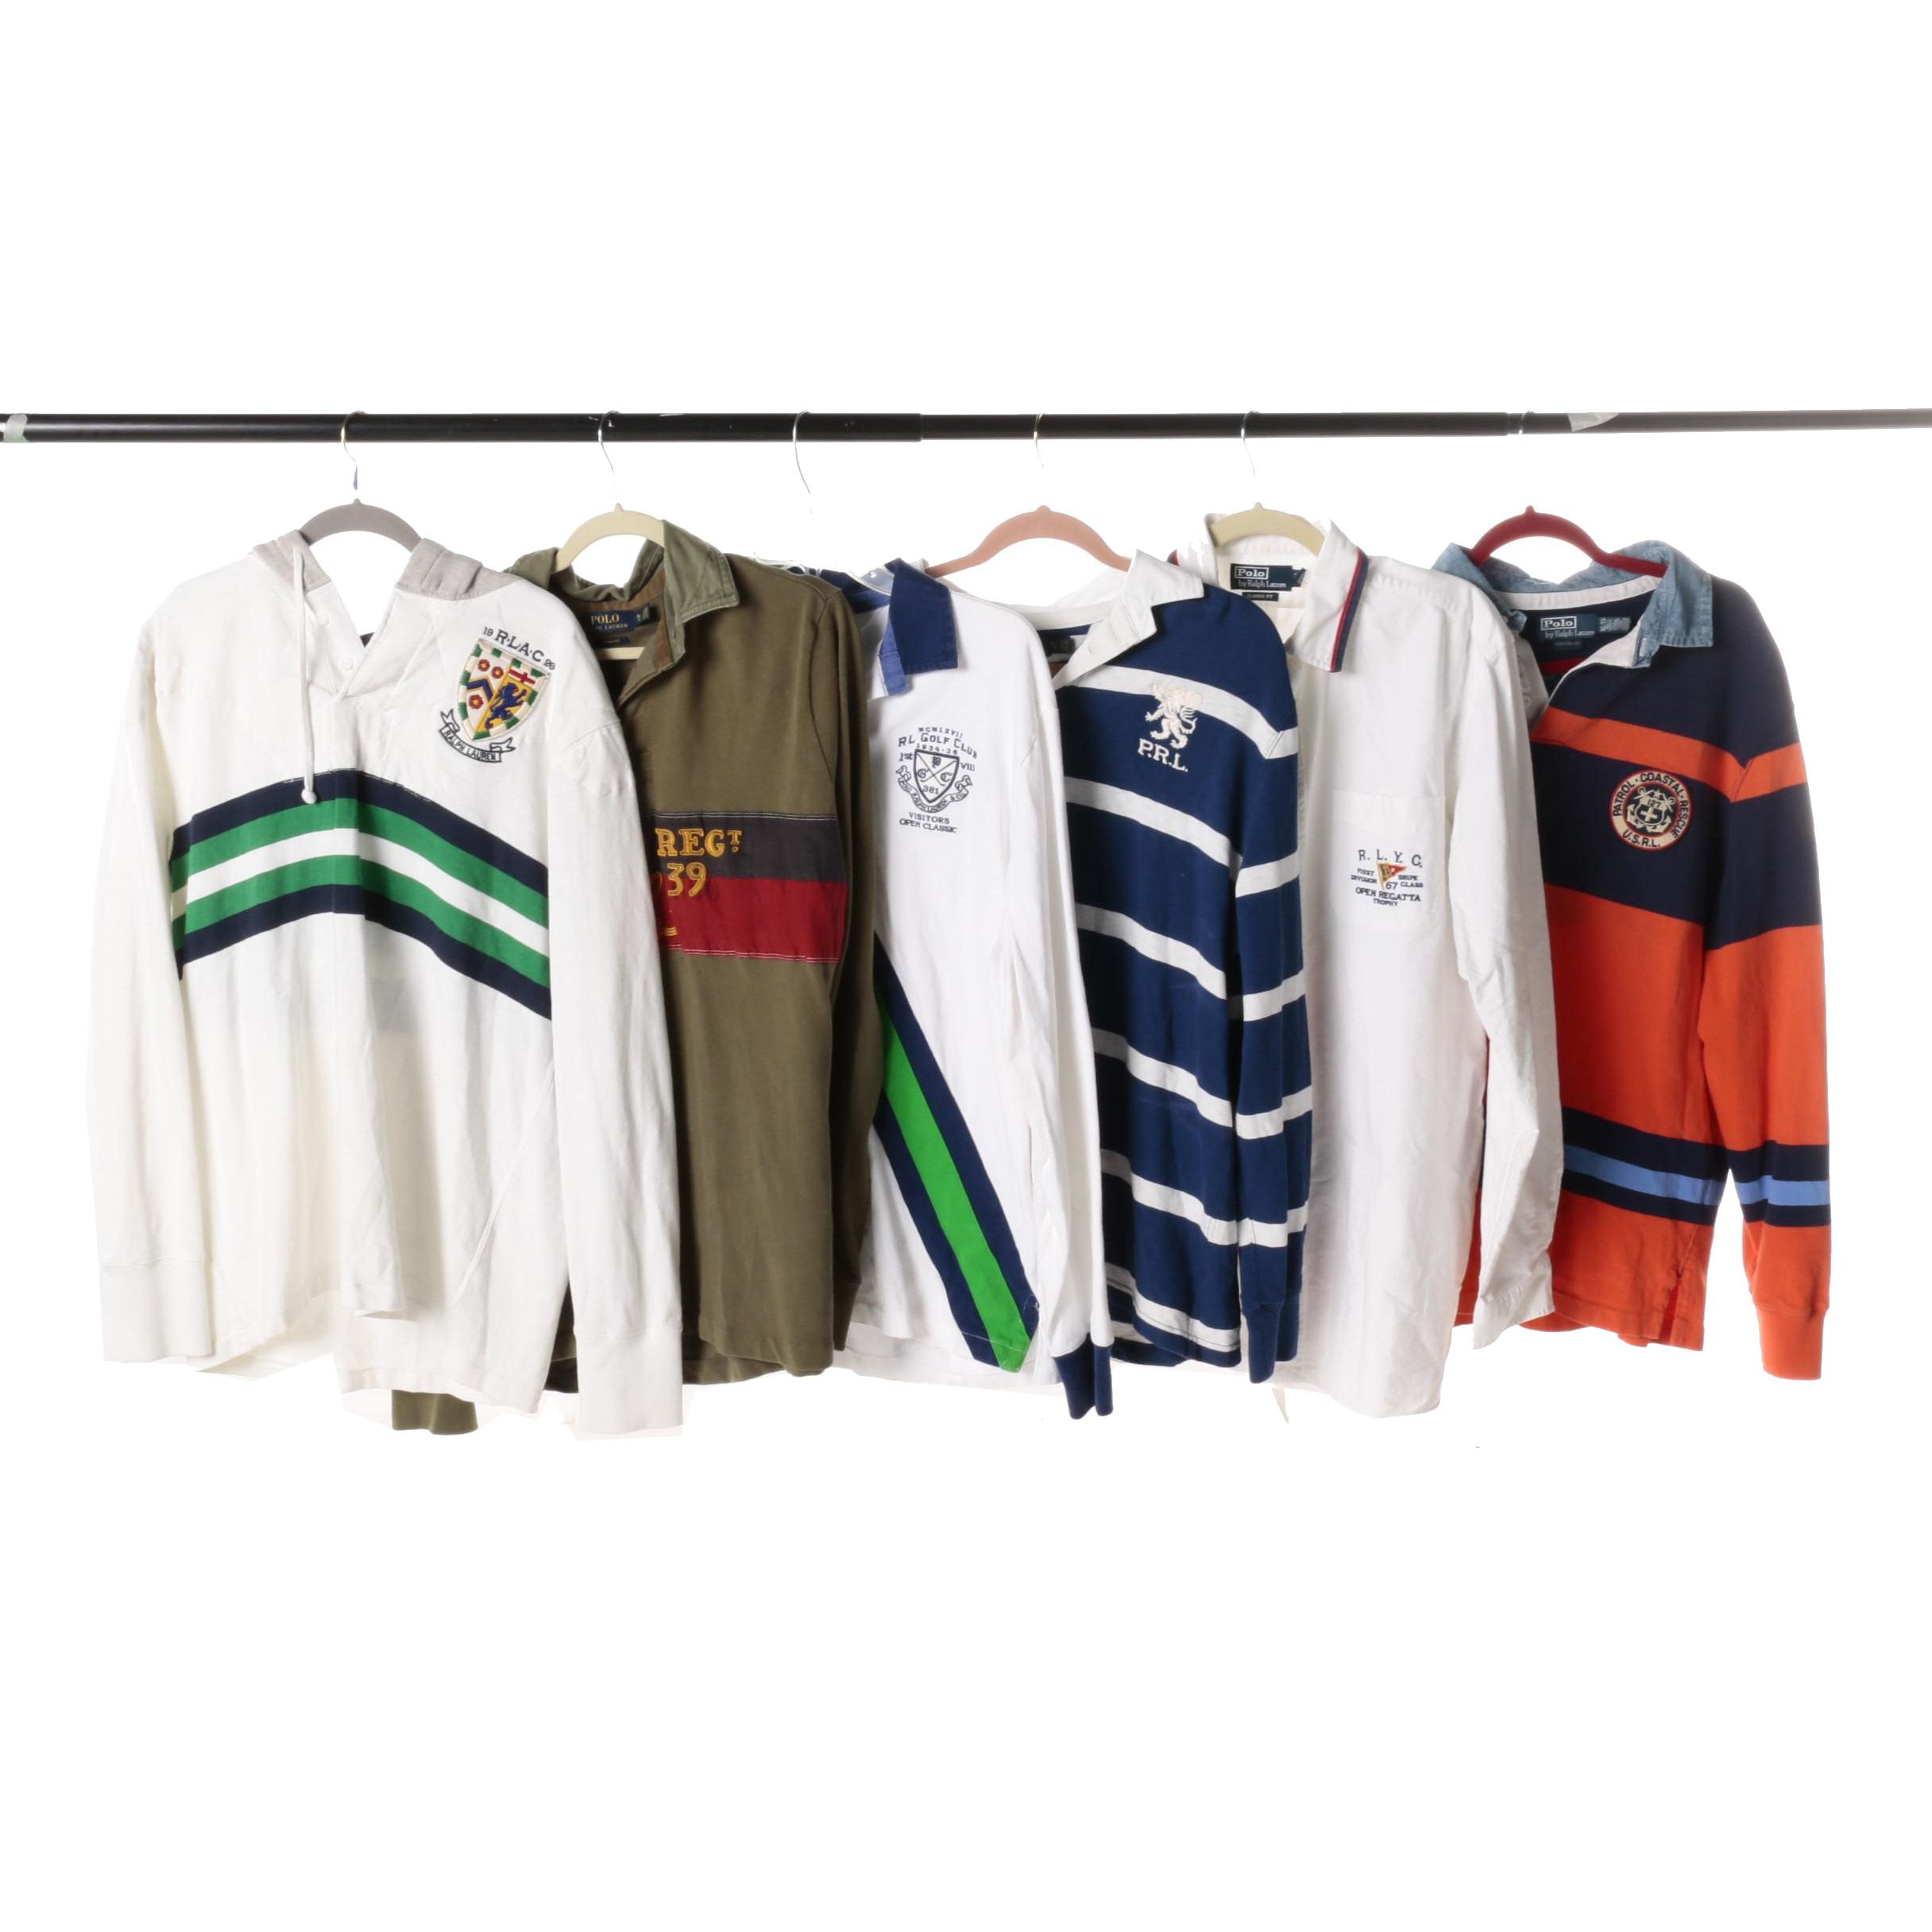 Men's Polo Ralph Lauren Rugby Shirts, Pullovers and a Button-Down